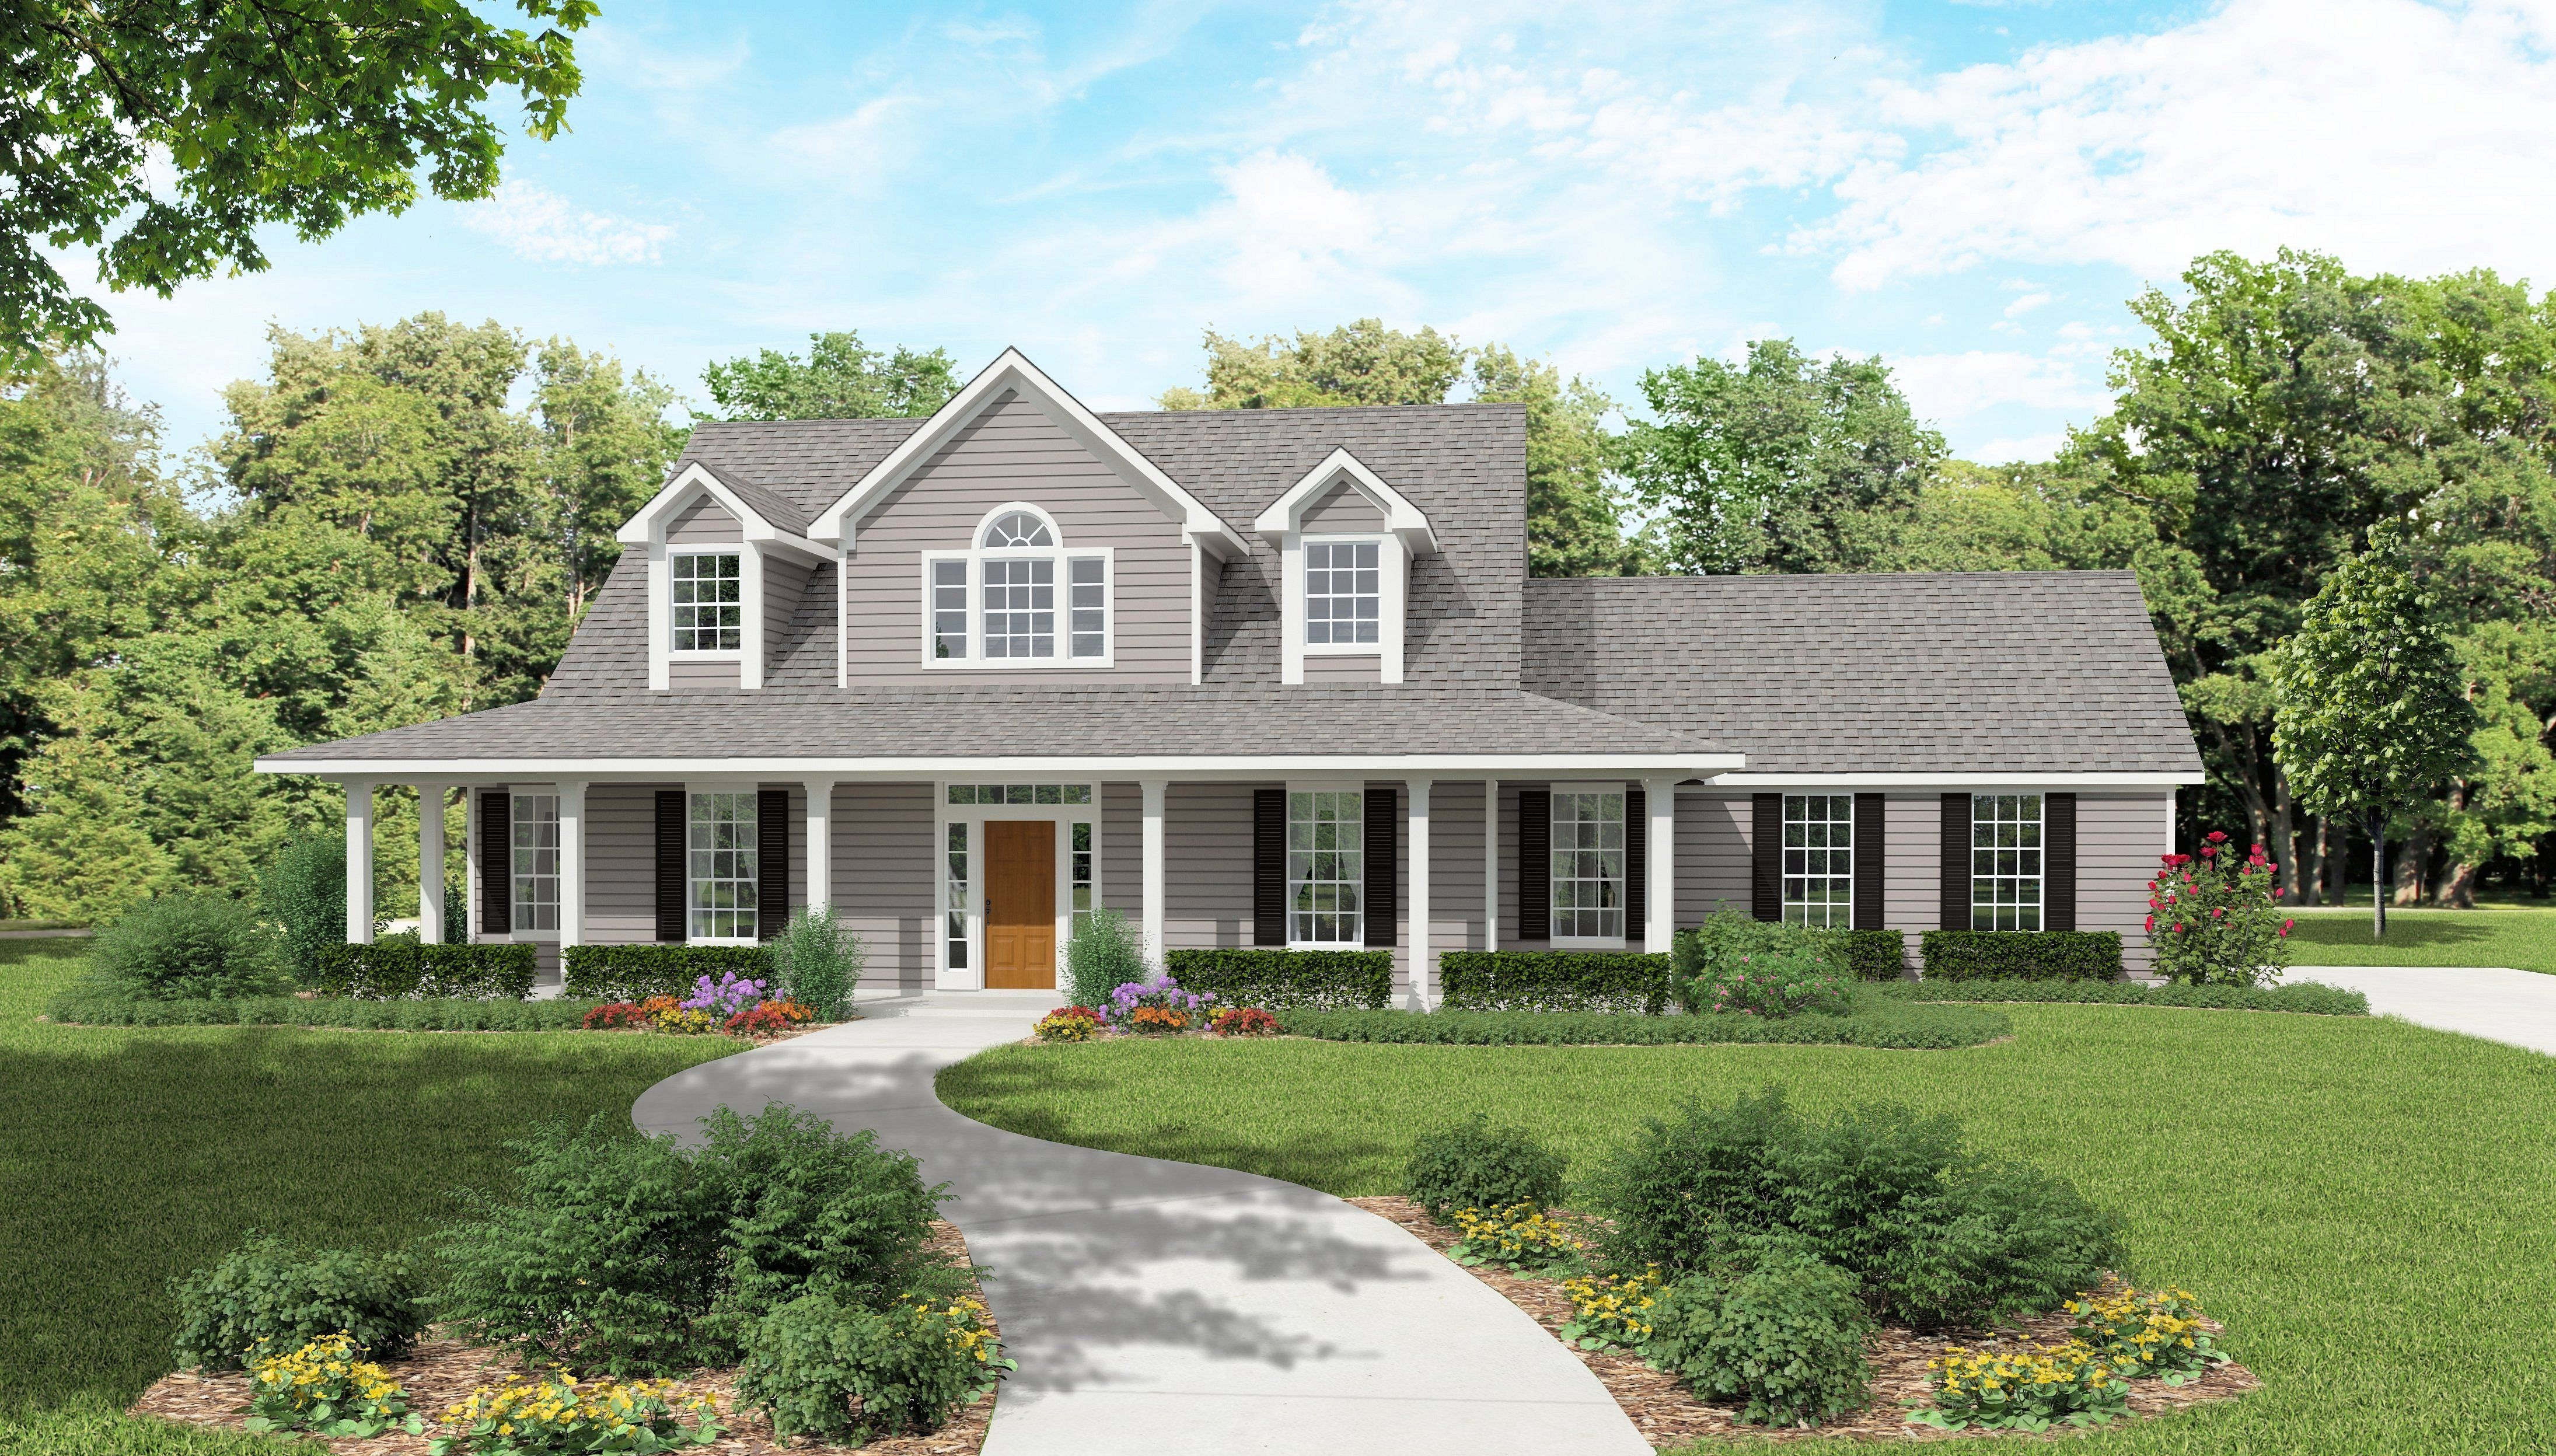 The blakely 2000 plus sq ft house plans design tech homes for 2000 sq ft farmhouse plans